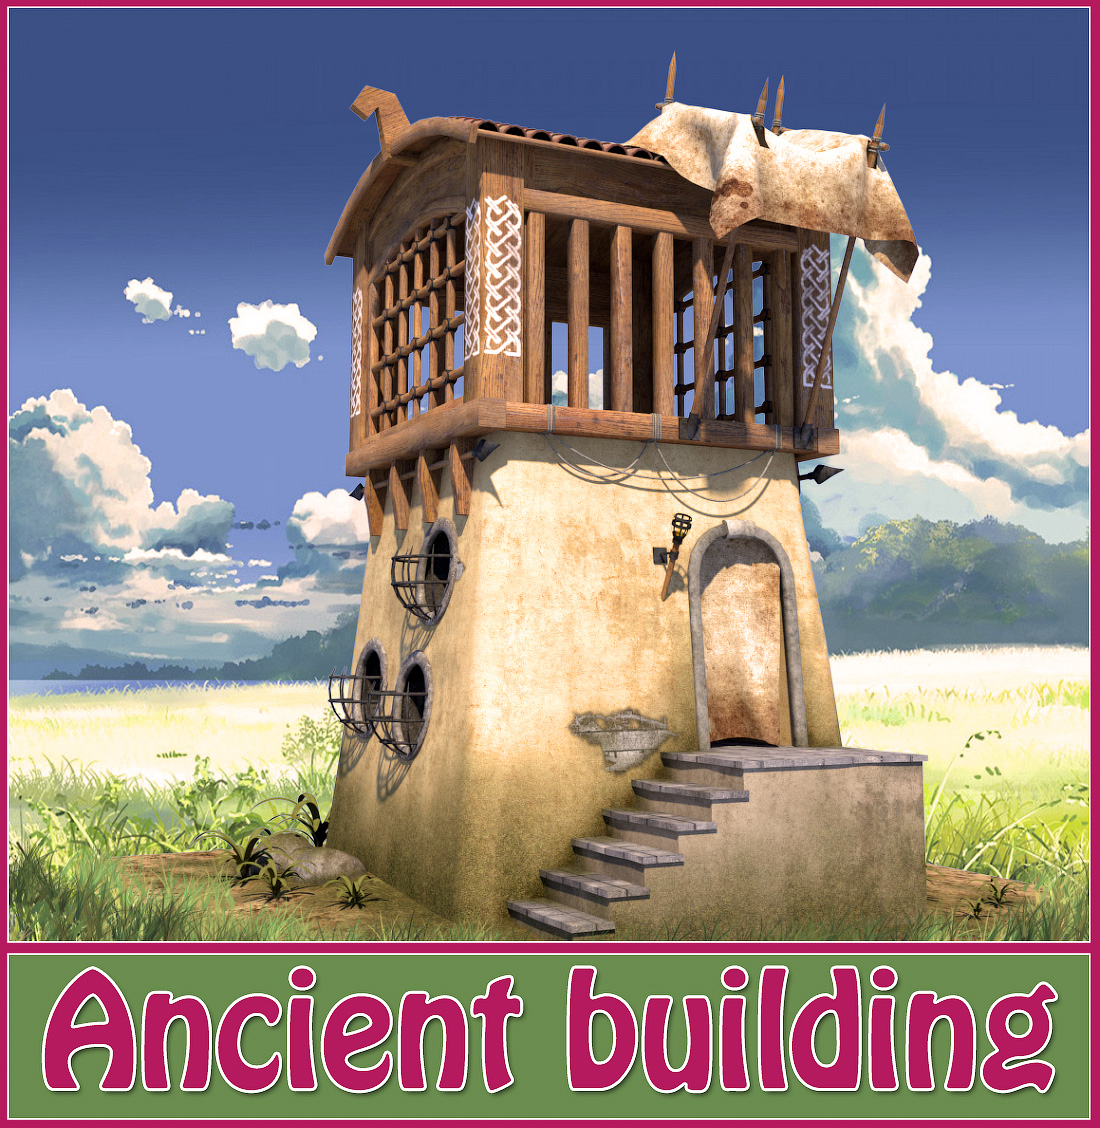 Ancient building